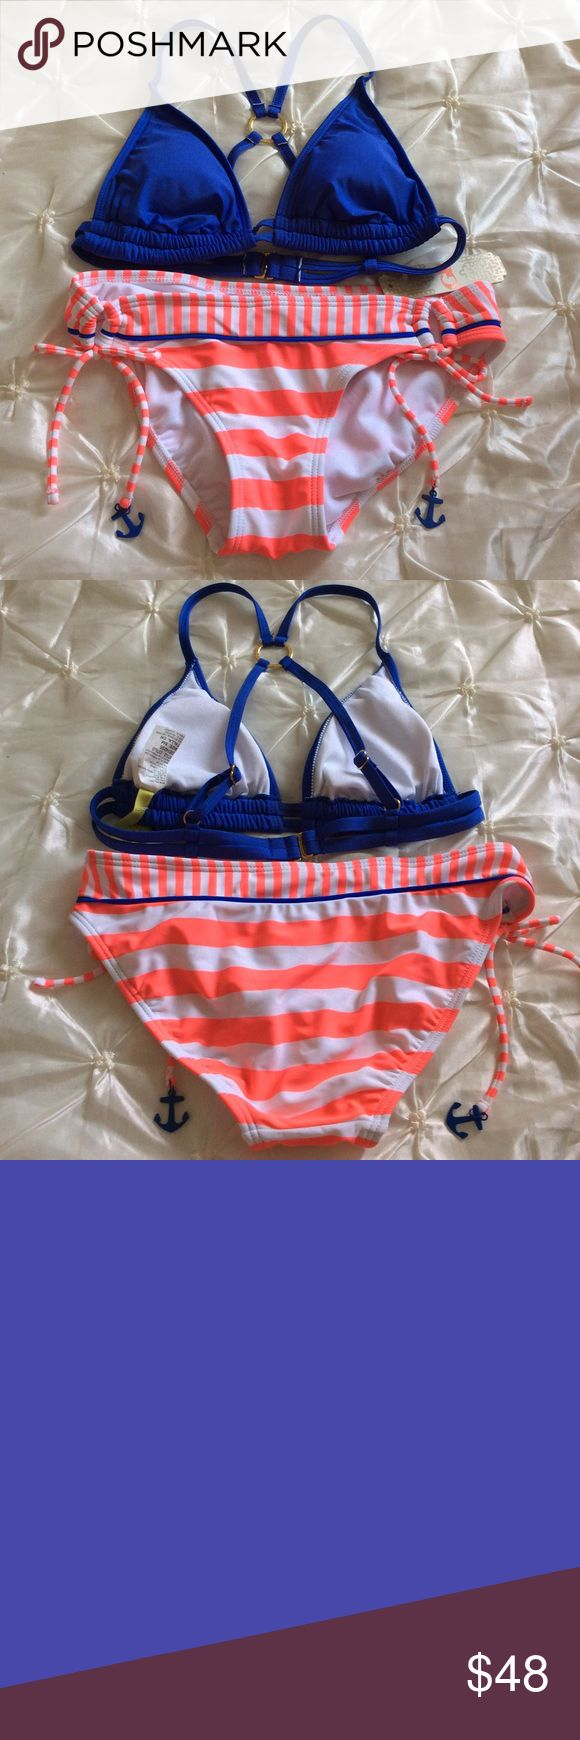 Gianni Bini Hot Pink Sailing Anchor Bikini Hot bright colors for this summer! Cute swimsuit with little anchors. Third and fourth picture are actual colors of the swimsuit.  Top is purplish blue and bottom is hot pink salmon color.  Gianni Bini Swim Bikinis